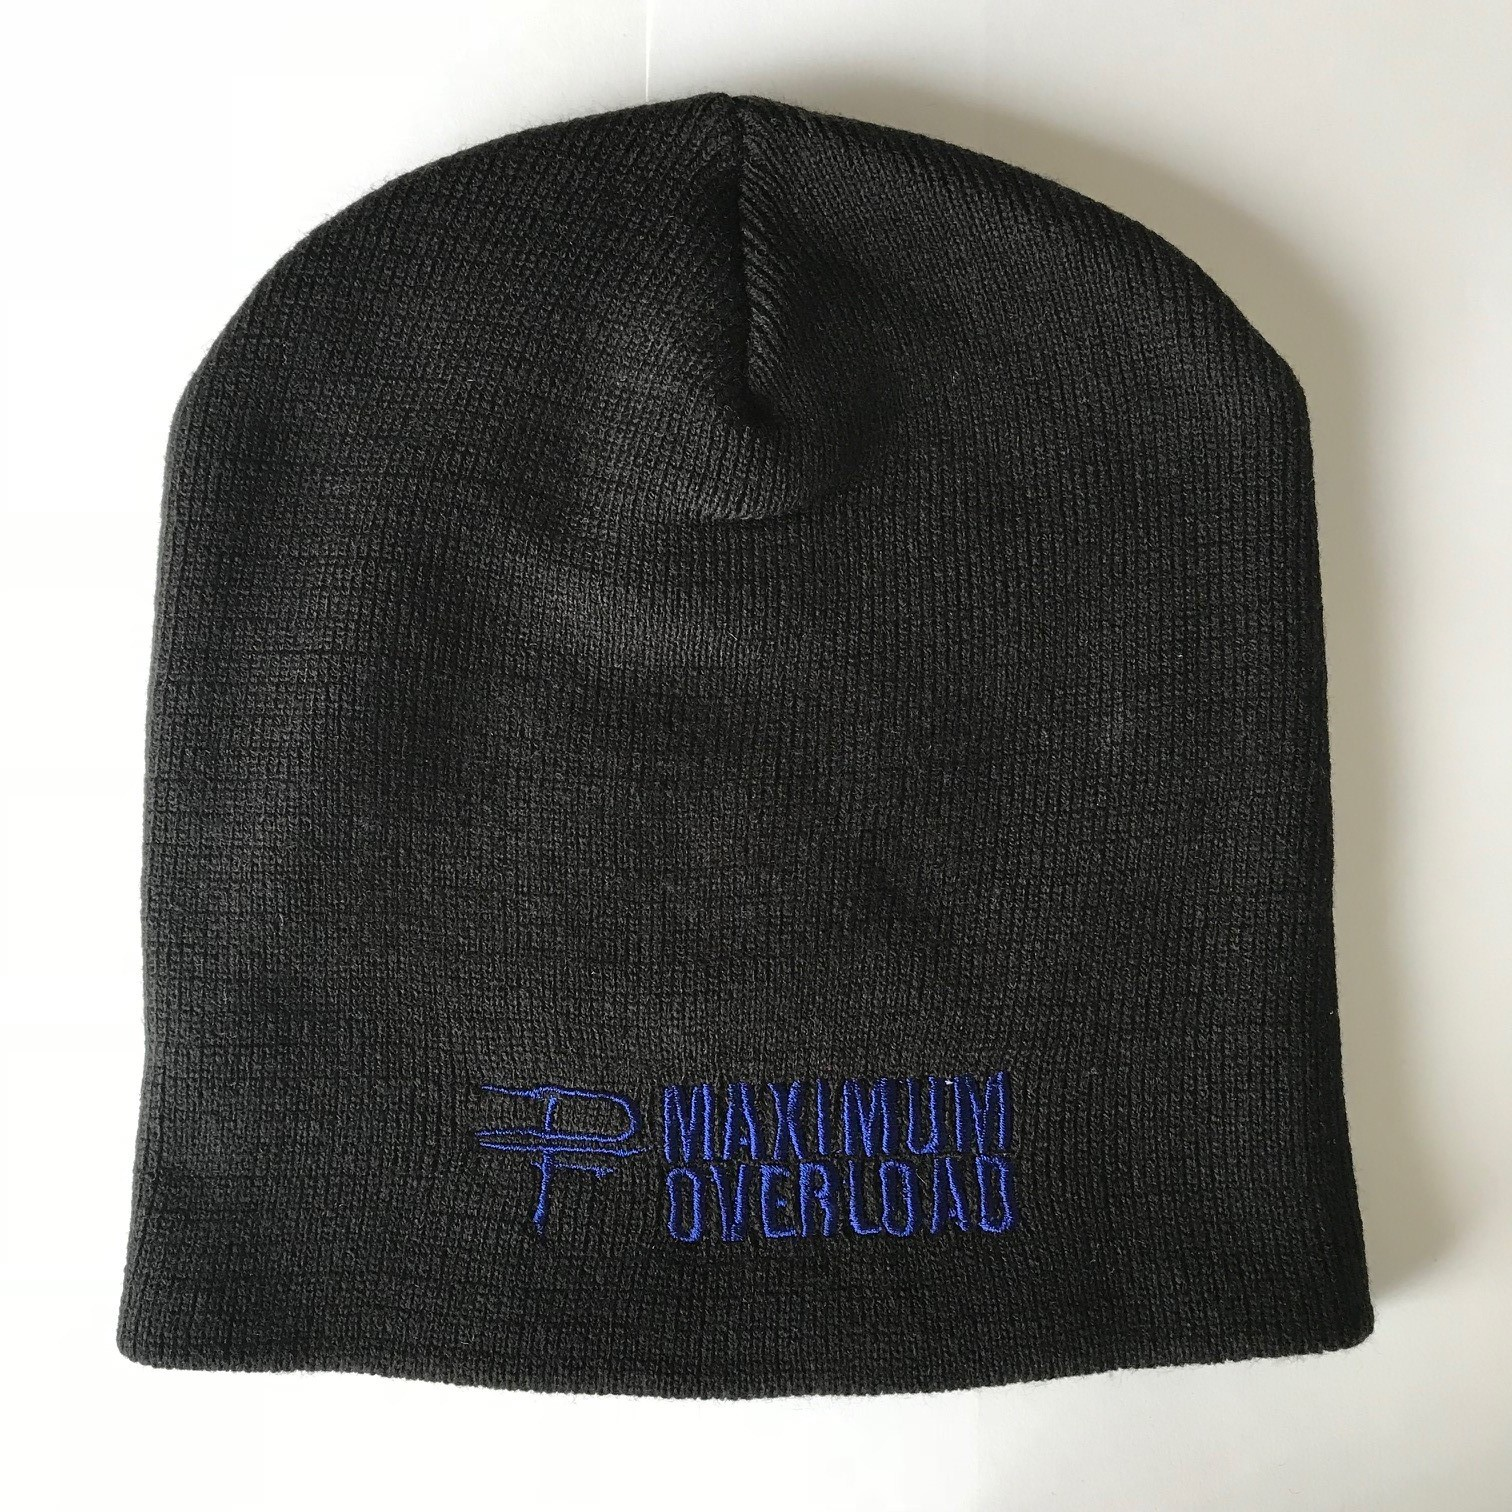 Maximum Overload – Embroidered Beanie - Dragonforce